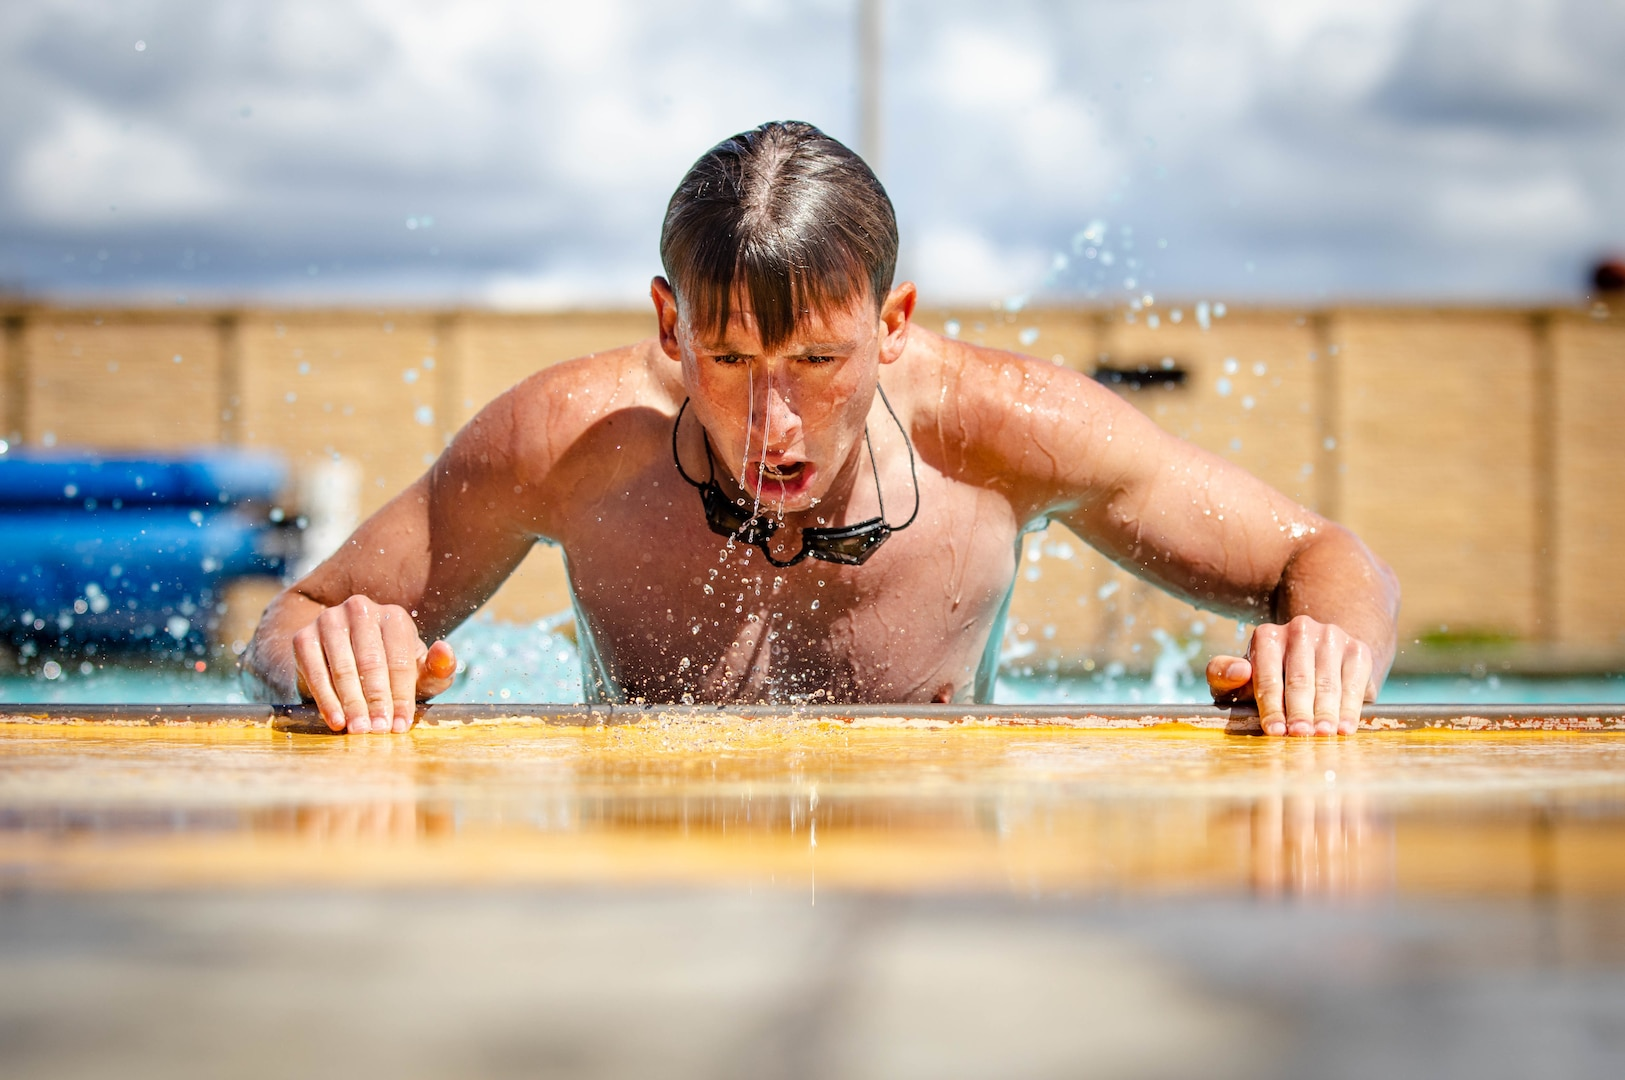 A U.S. Marine participates in a poolside workout at Marine Corps Base Camp Pendleton, Calif., March 11.